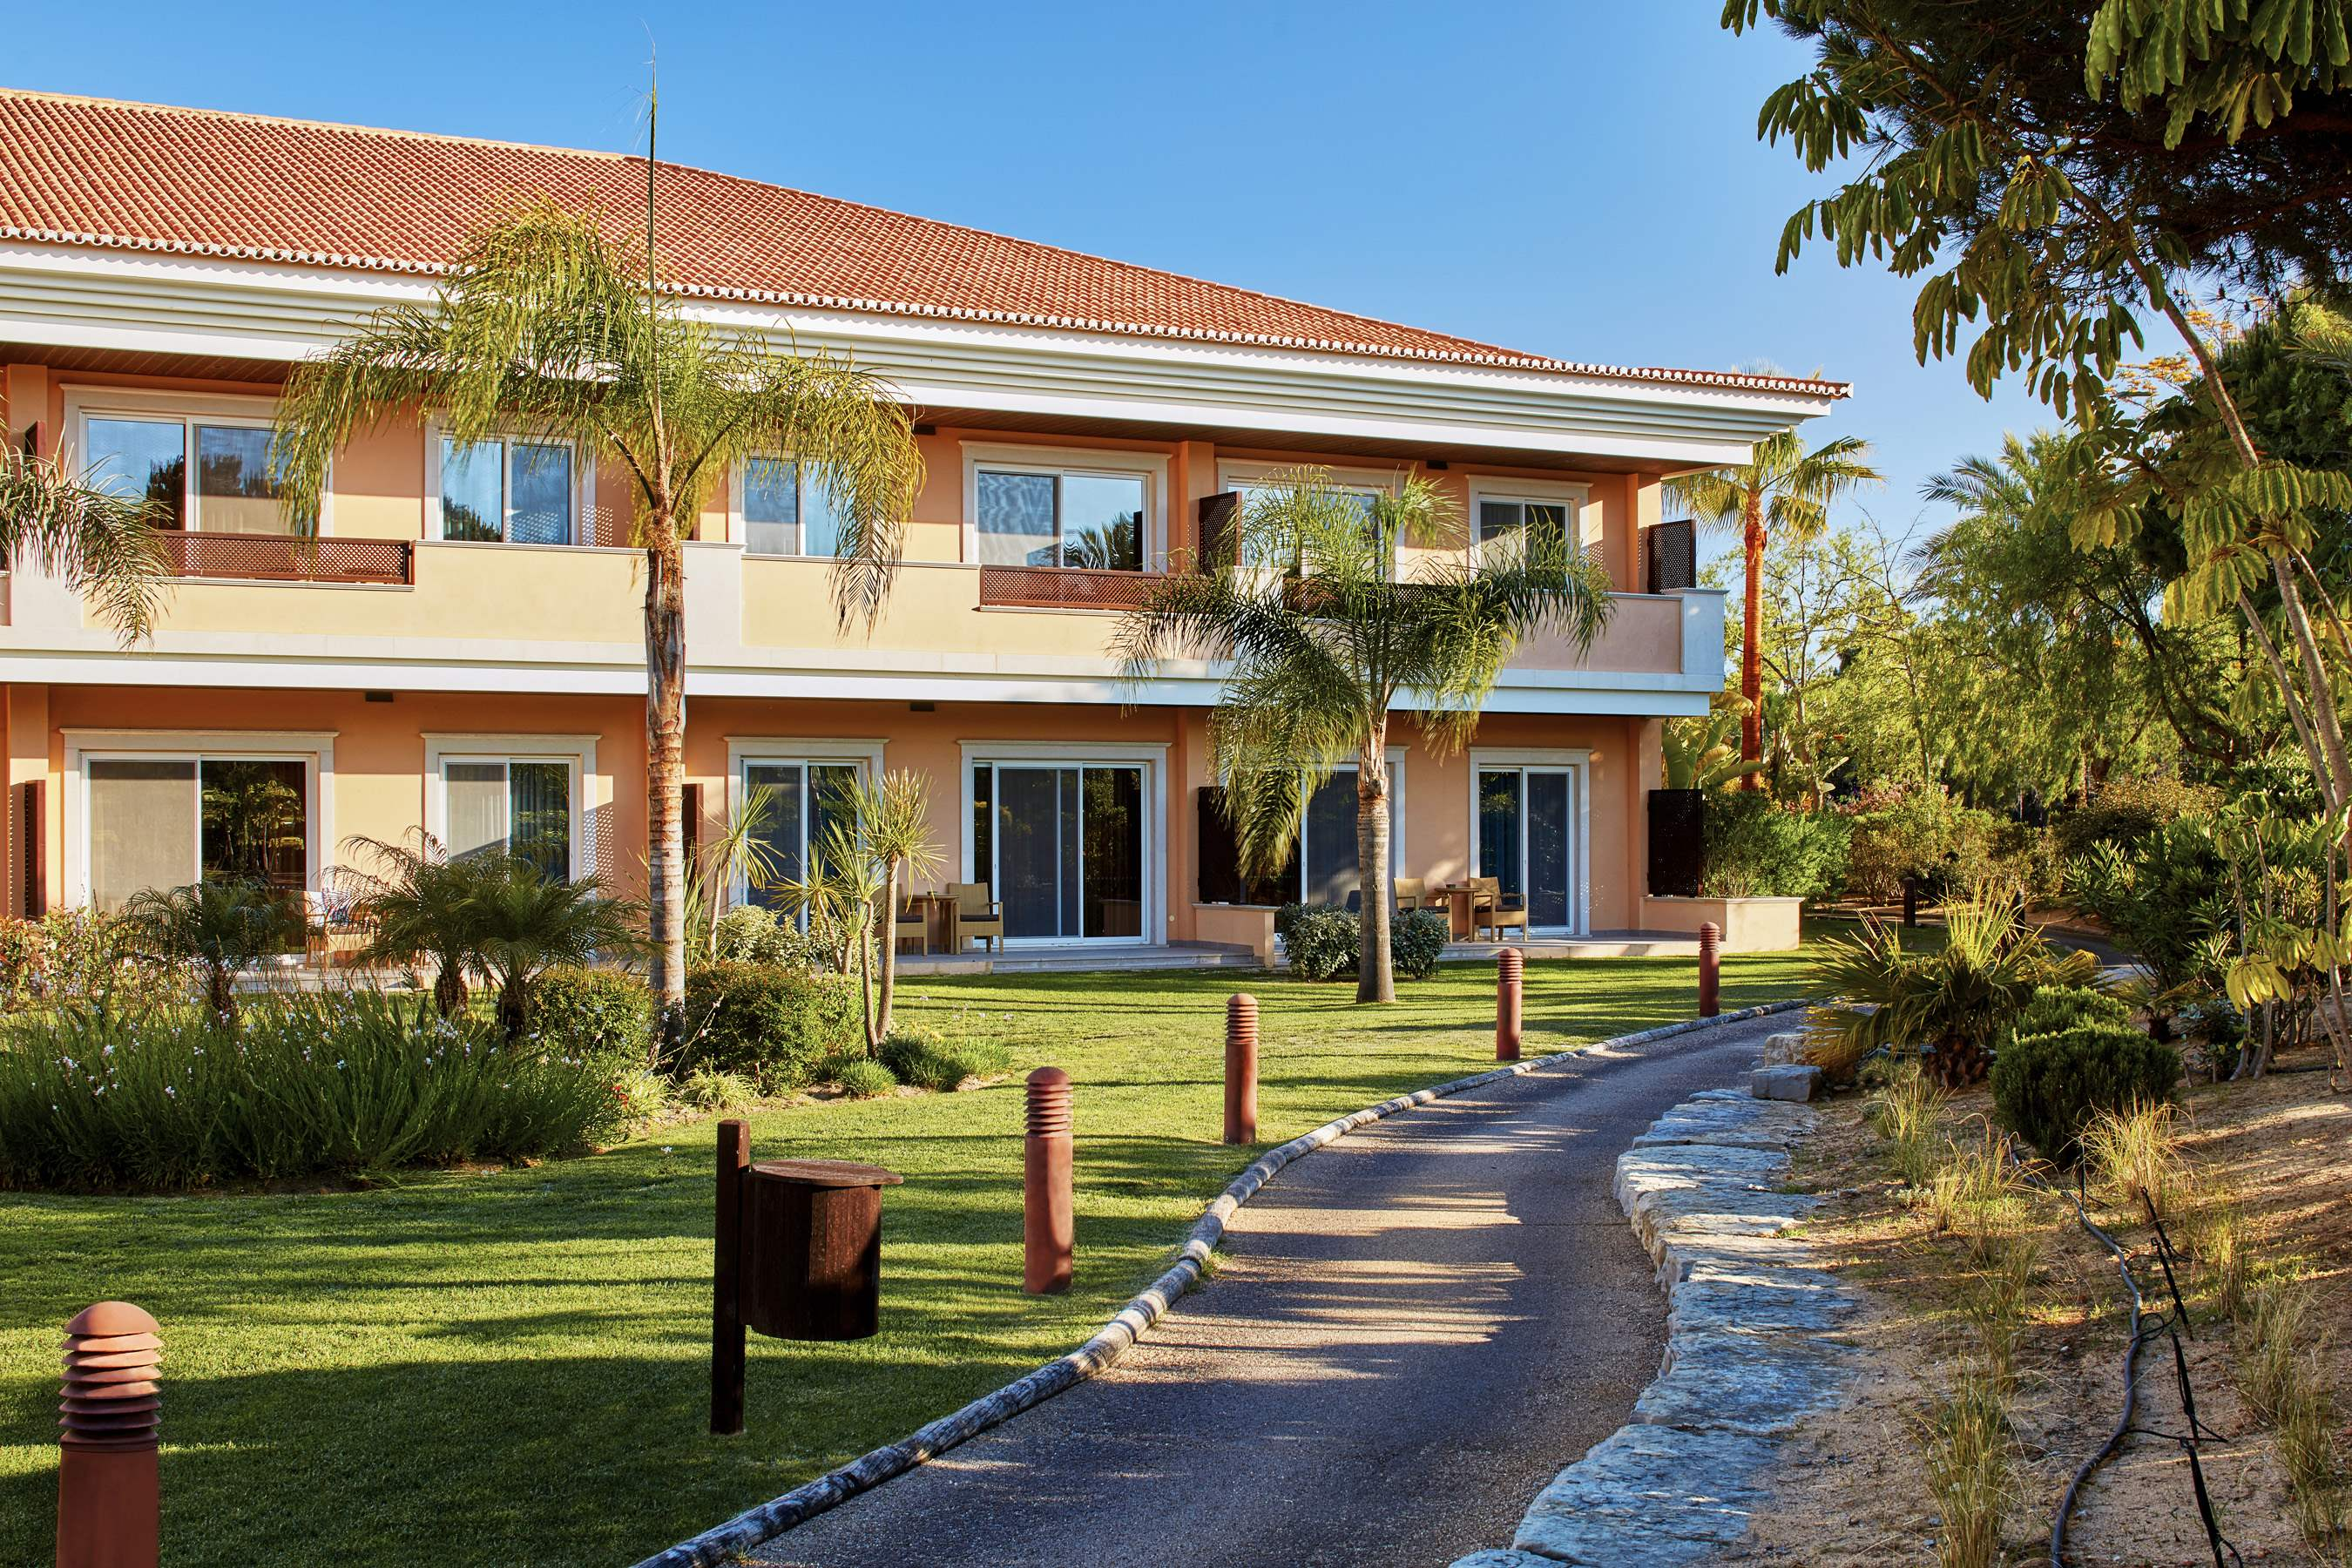 Wyndham Grand Algarve 2 Bedroom, Deluxe Family Suite, Pool Side, Room Only, 2 bedroom apartment in Wyndham Grand Algarve, Algarve Photo #27